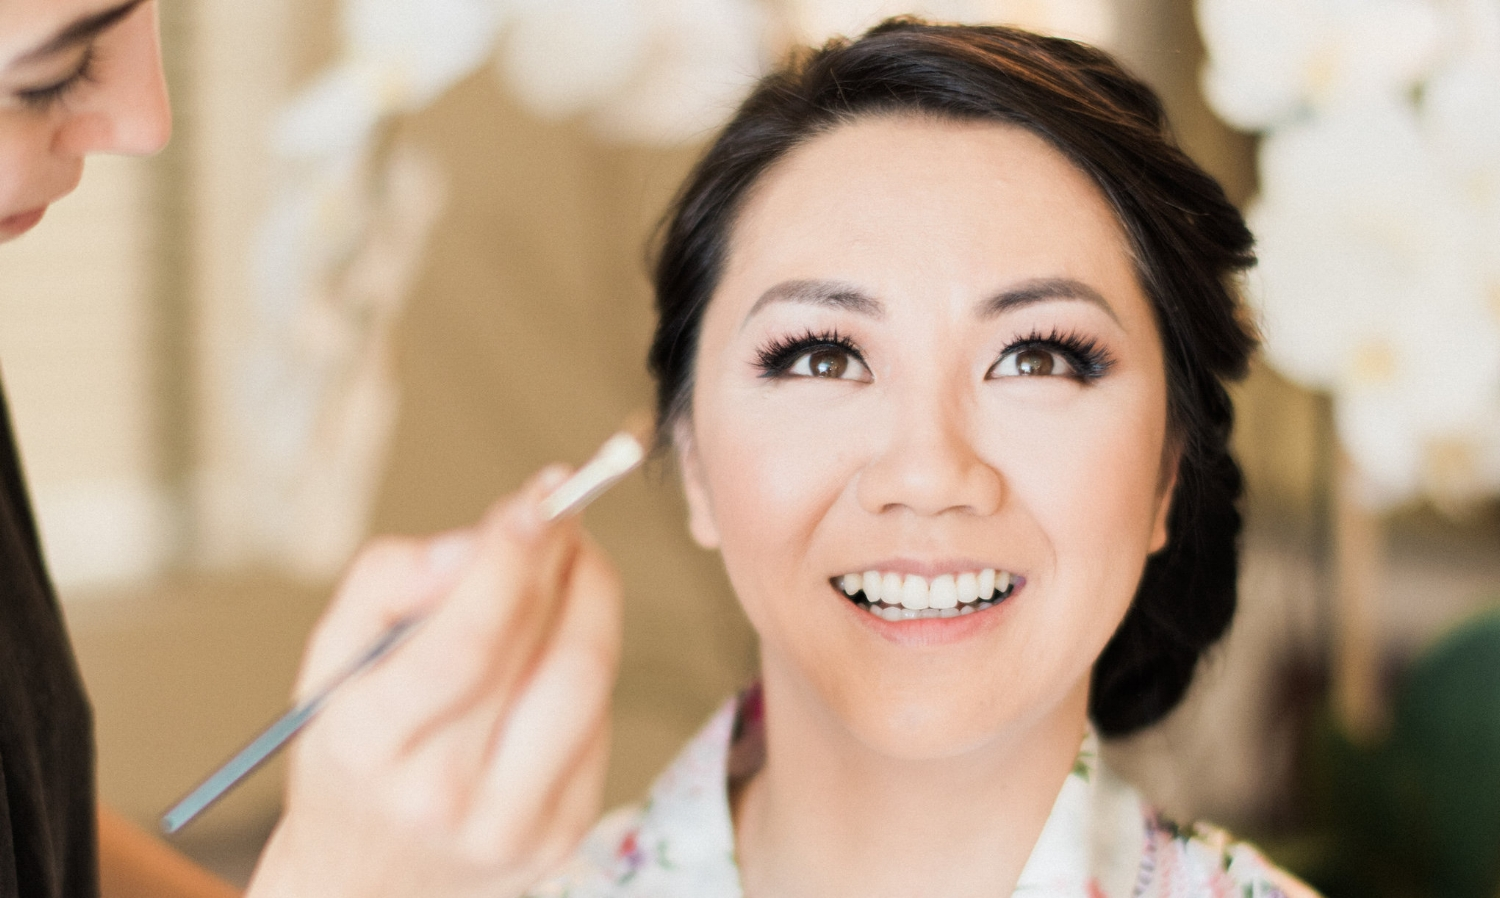 Asian Bride Morning of Wedding with Simple Makeup and Eyeliner in Floral Robe. Bridal Hair and Makeup by Vanity Belle in Orange County (Costa Mesa) and San Diego (La Jolla)